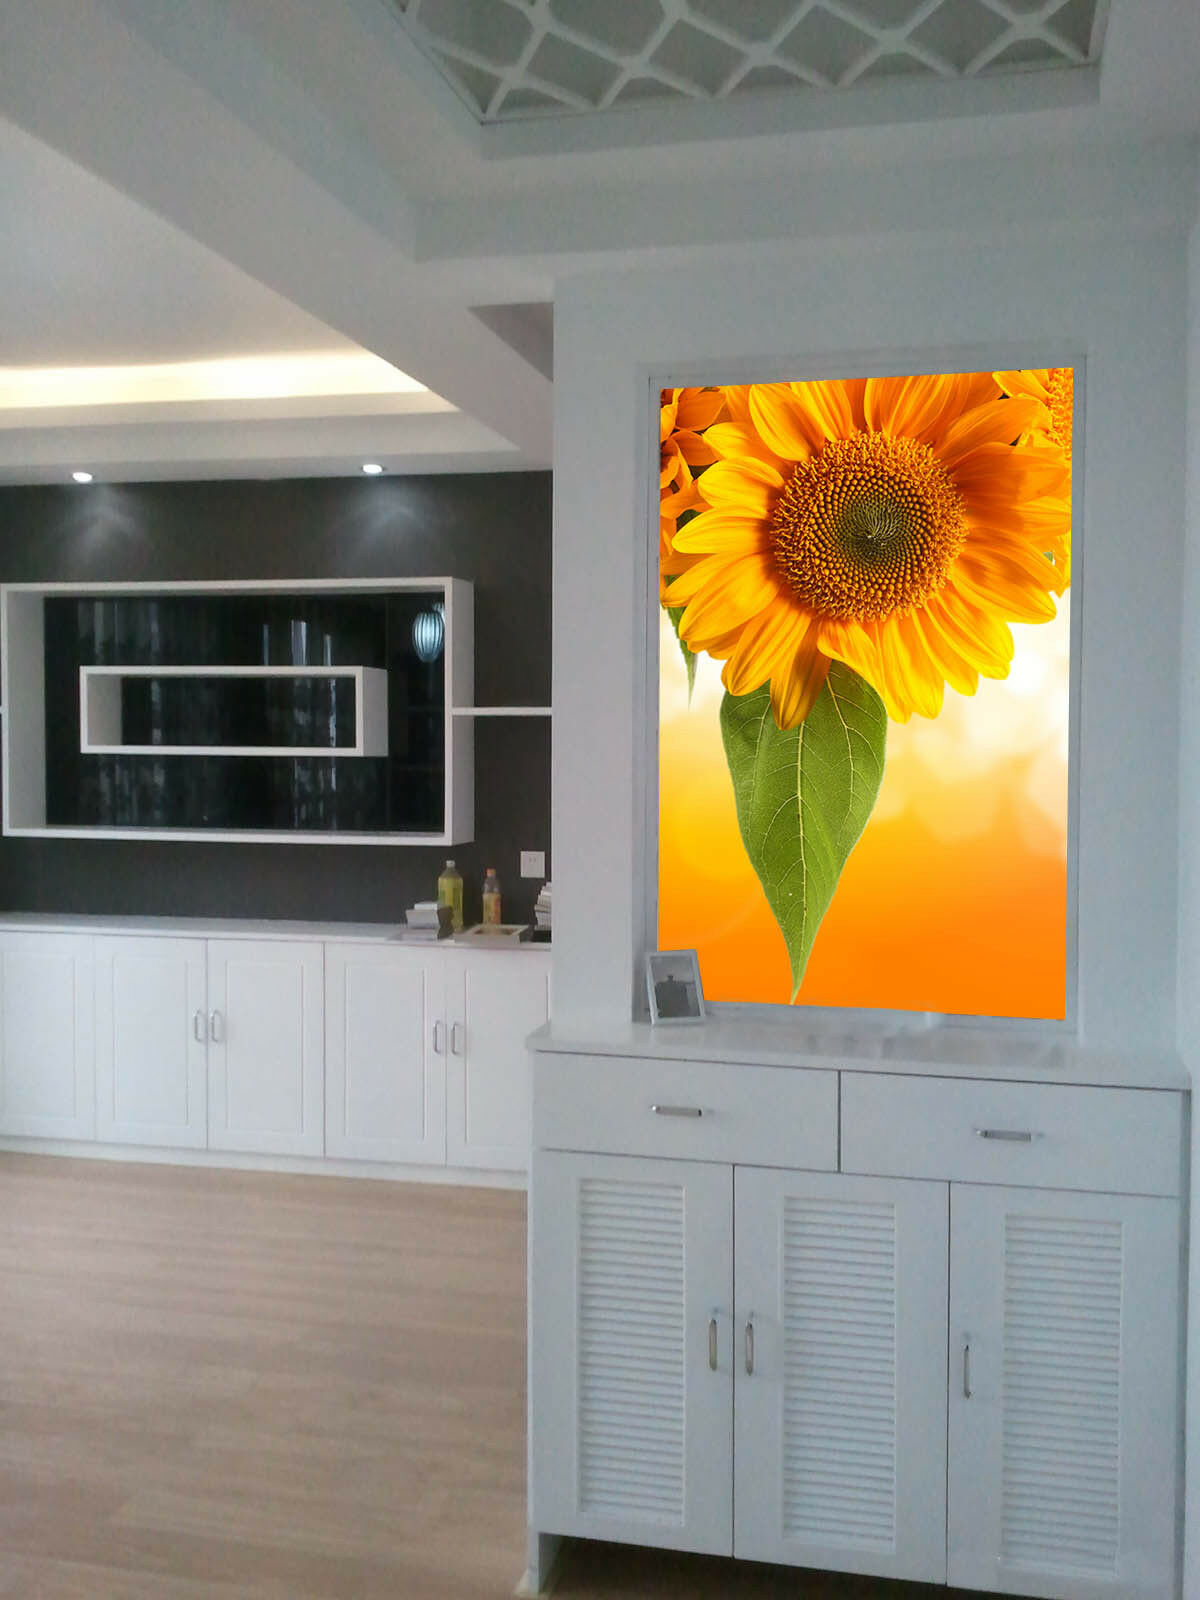 3D Sunflower 467 Wallpaper Murals Wall Print Wall Mural AJ WALL AU Lemon